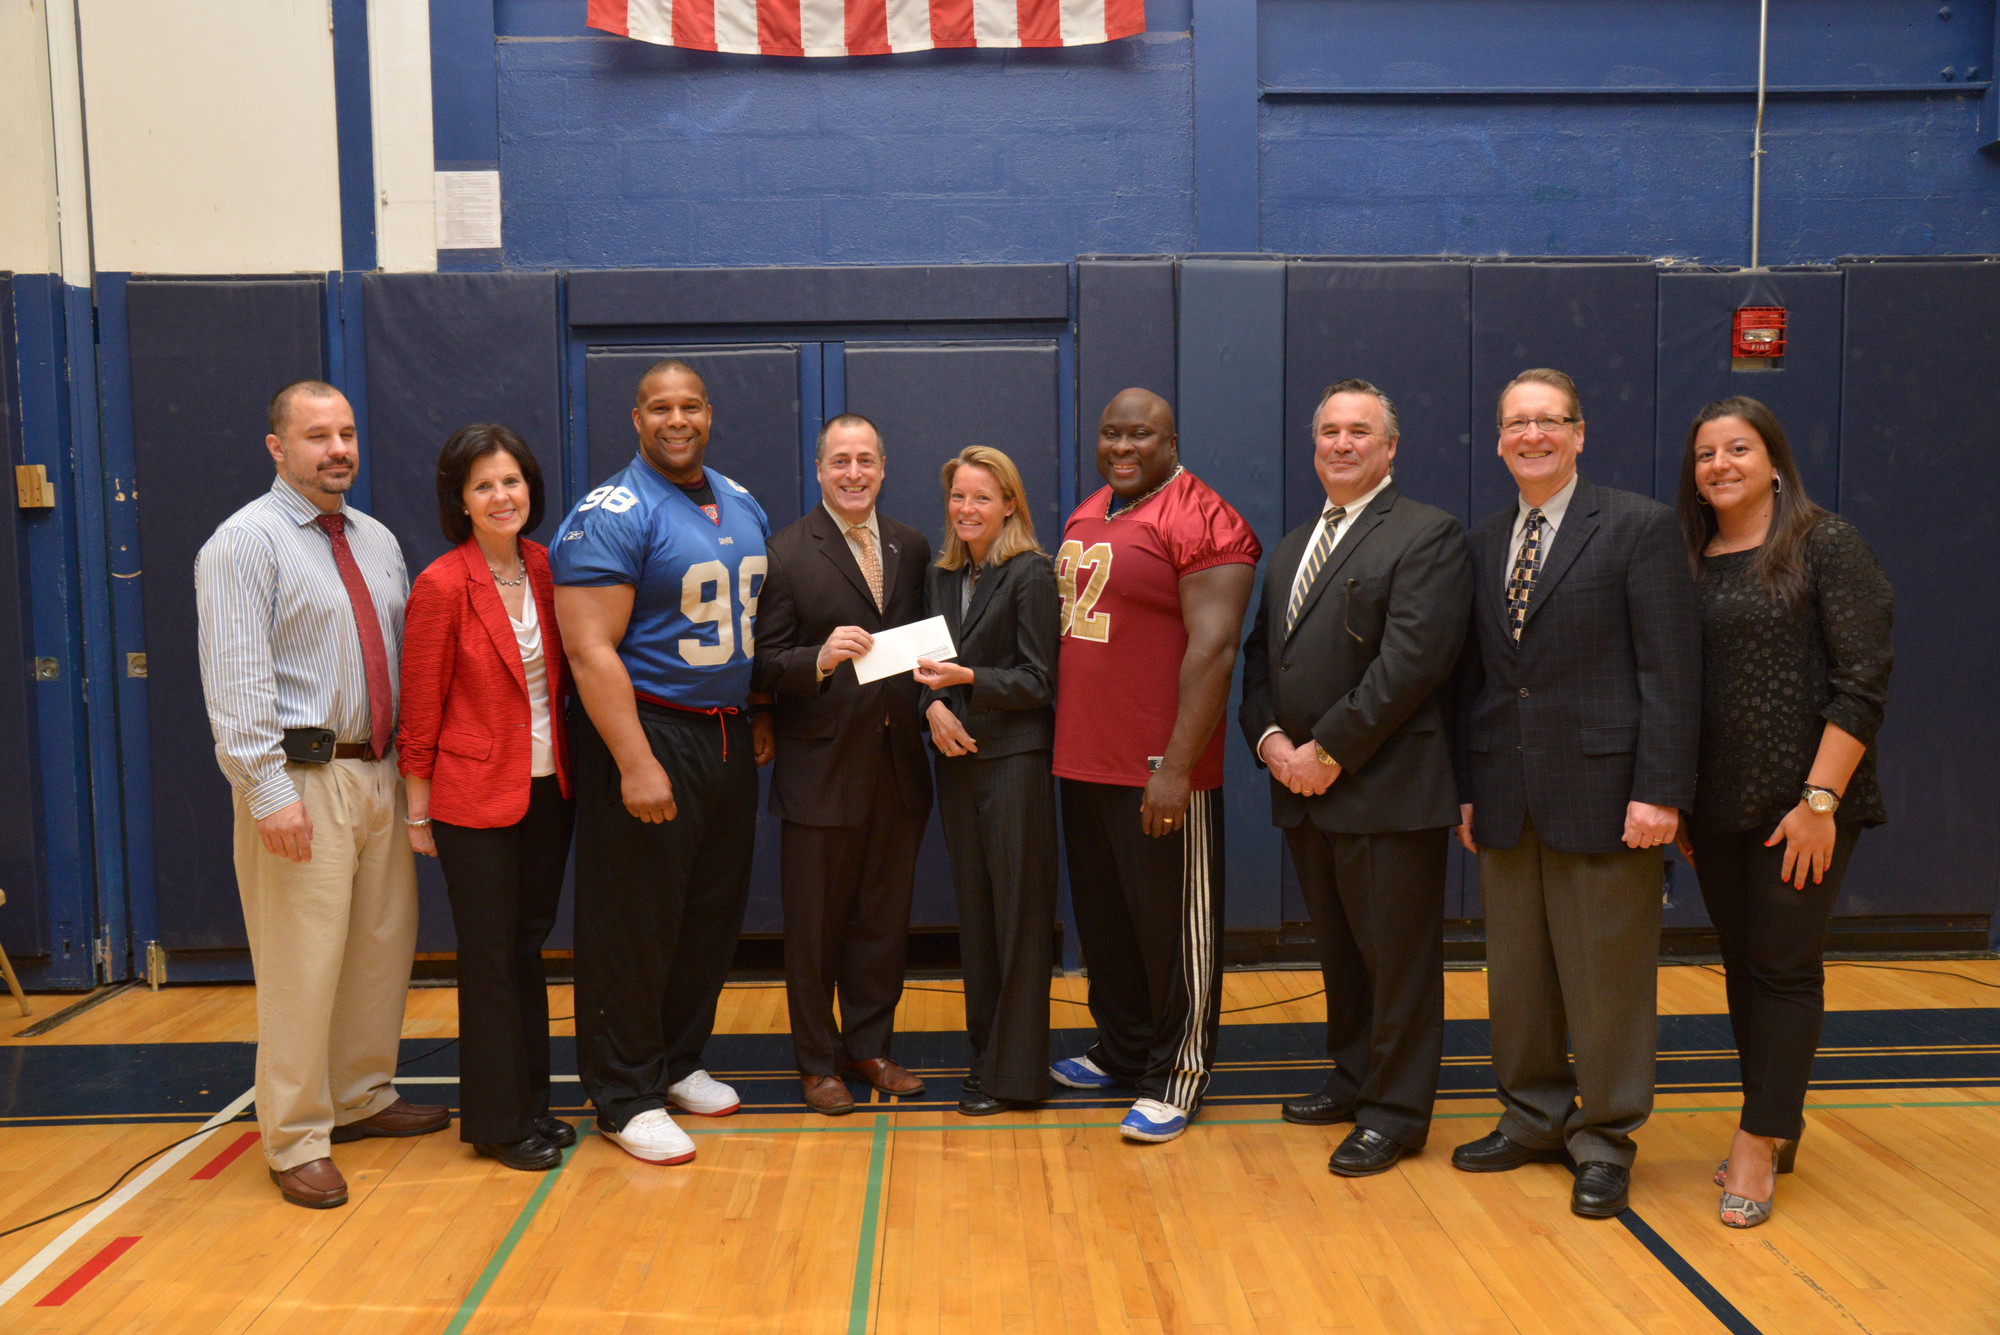 Ed Ramirez, BHS Athletic Director, left, with Pat Banhazl (School to Careers administrator), Keith Davis, Assemblyman Brian Curran, Molloy College Athletic Director Susan Cassidy-Lyke, Clarence Lee, Jim Scannell, Richard Miskiewicz (BHS assistant principal) and Helen Kanellopoulas. Molloy was presenting a check to BHS.